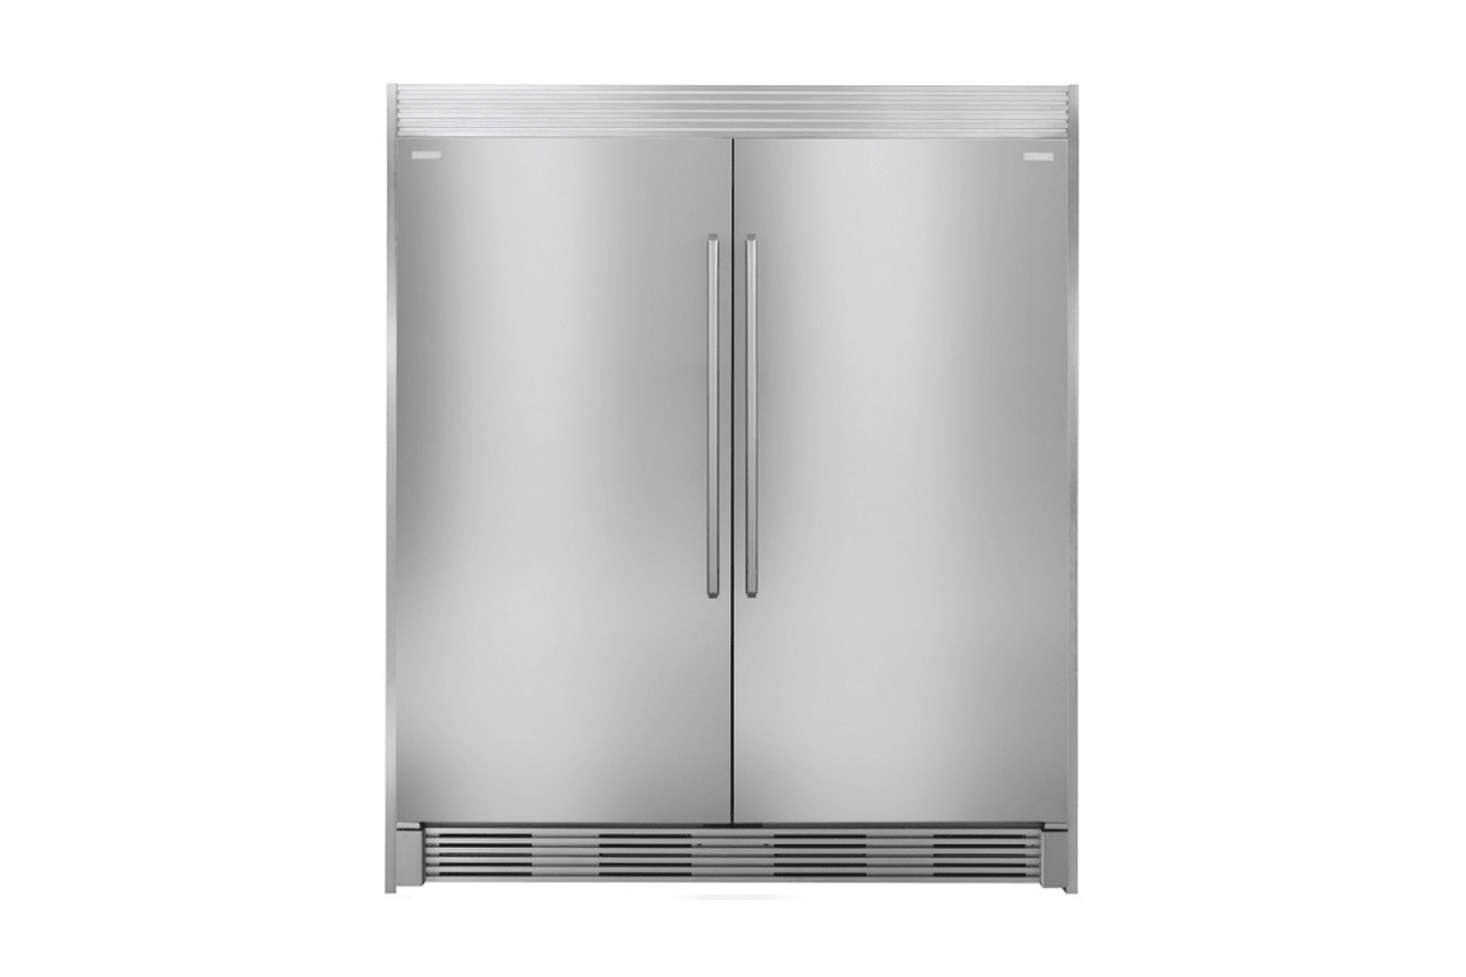 The refrigerator is an Electrolux Side-by-Side Column Refrigerator and Freezer Set; $4,545. at AJ Madison.